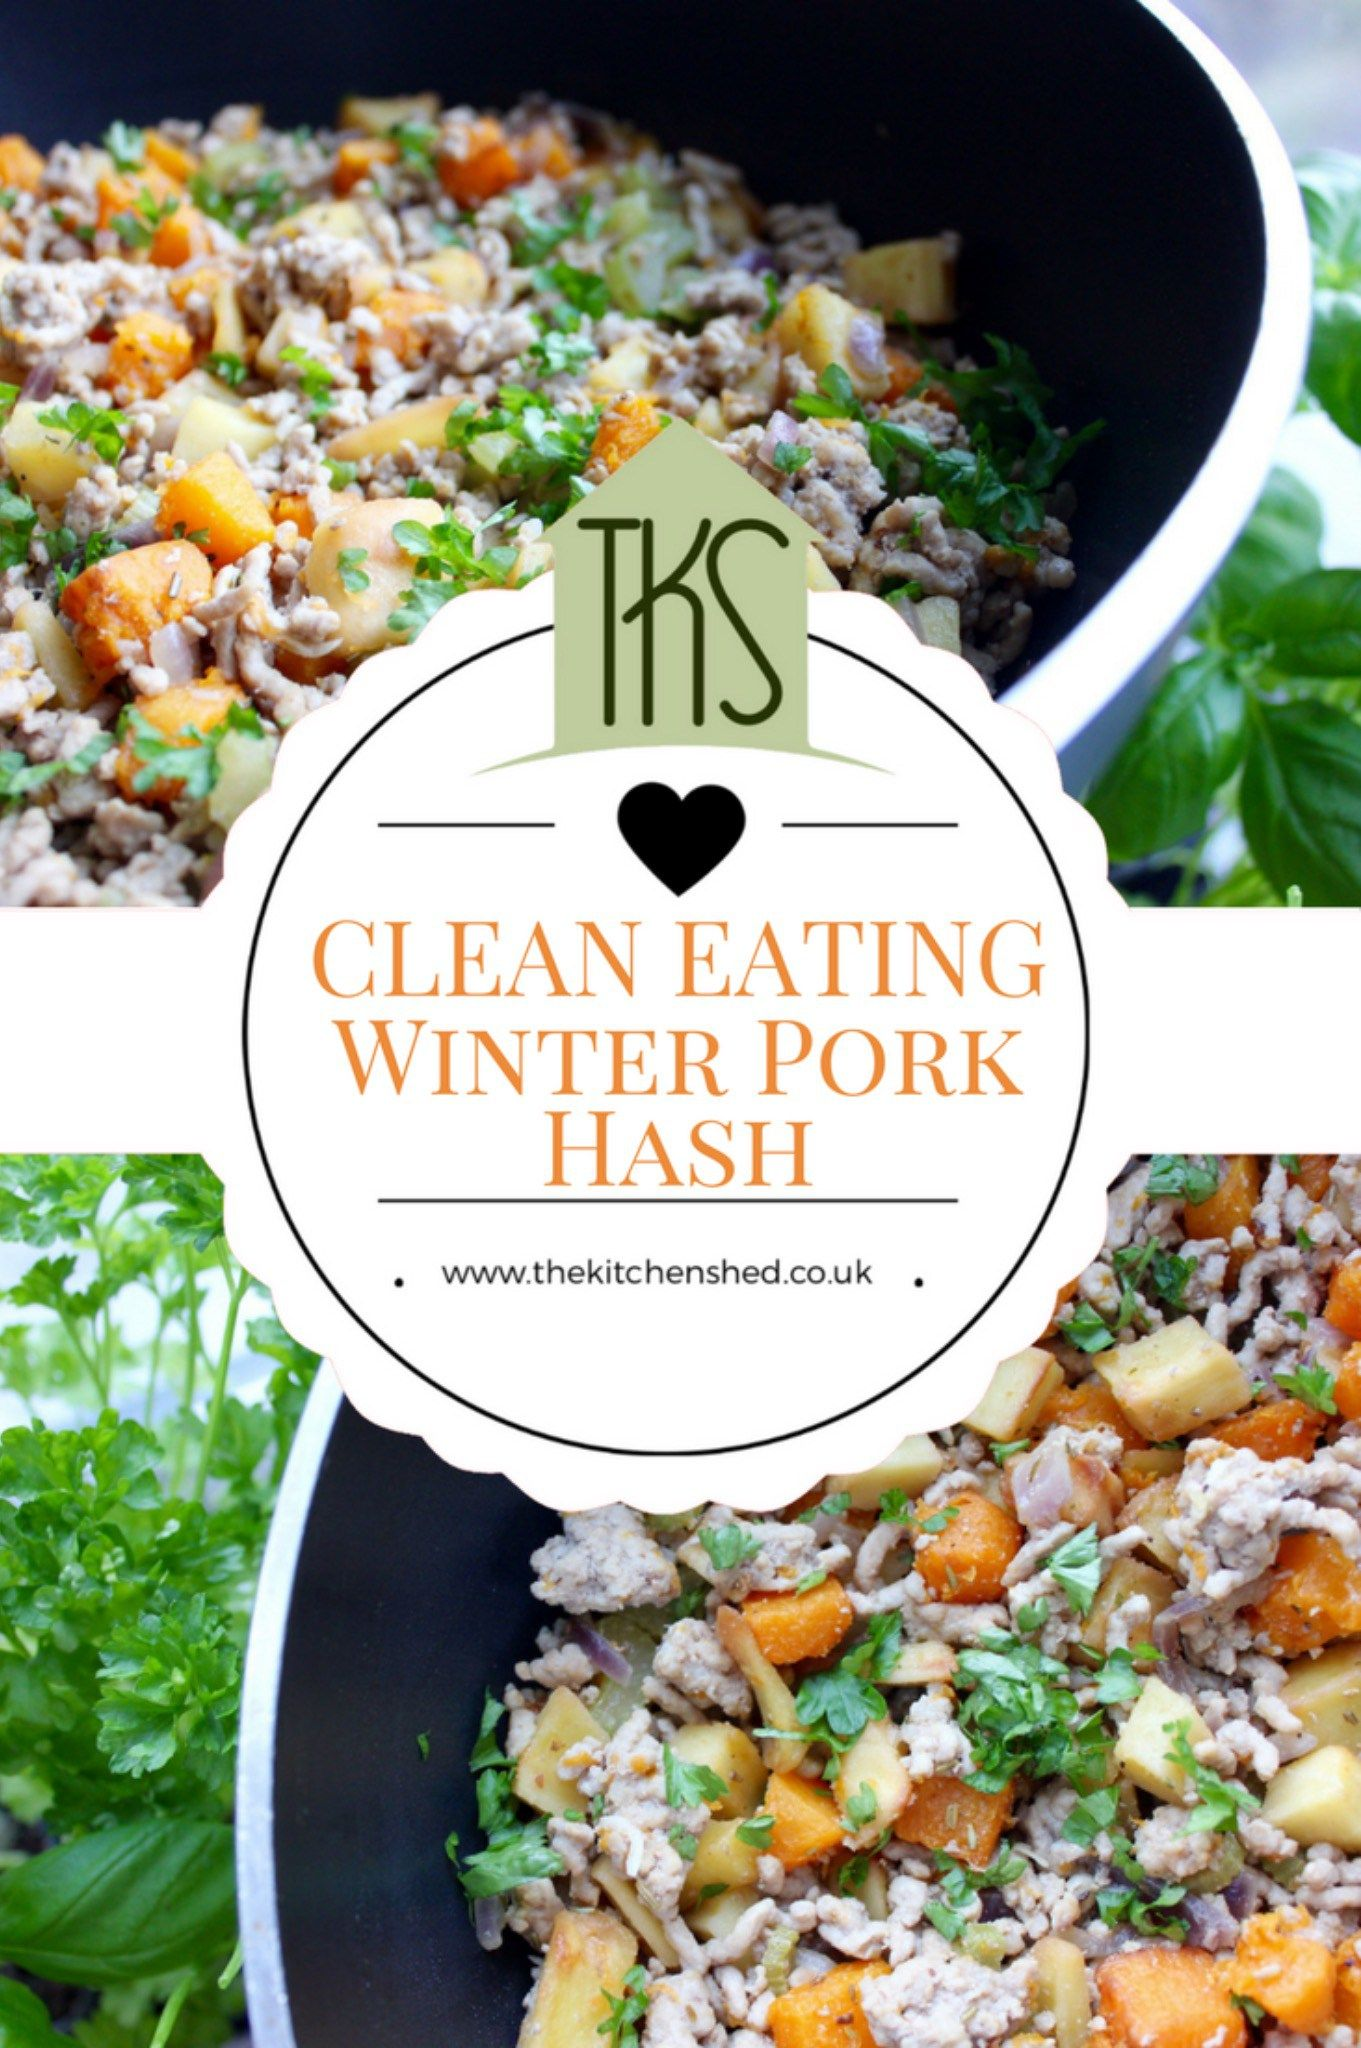 Clean eating winter pork hash recipe clean eating pork and clean eating winter pork hash the kitchen shed forumfinder